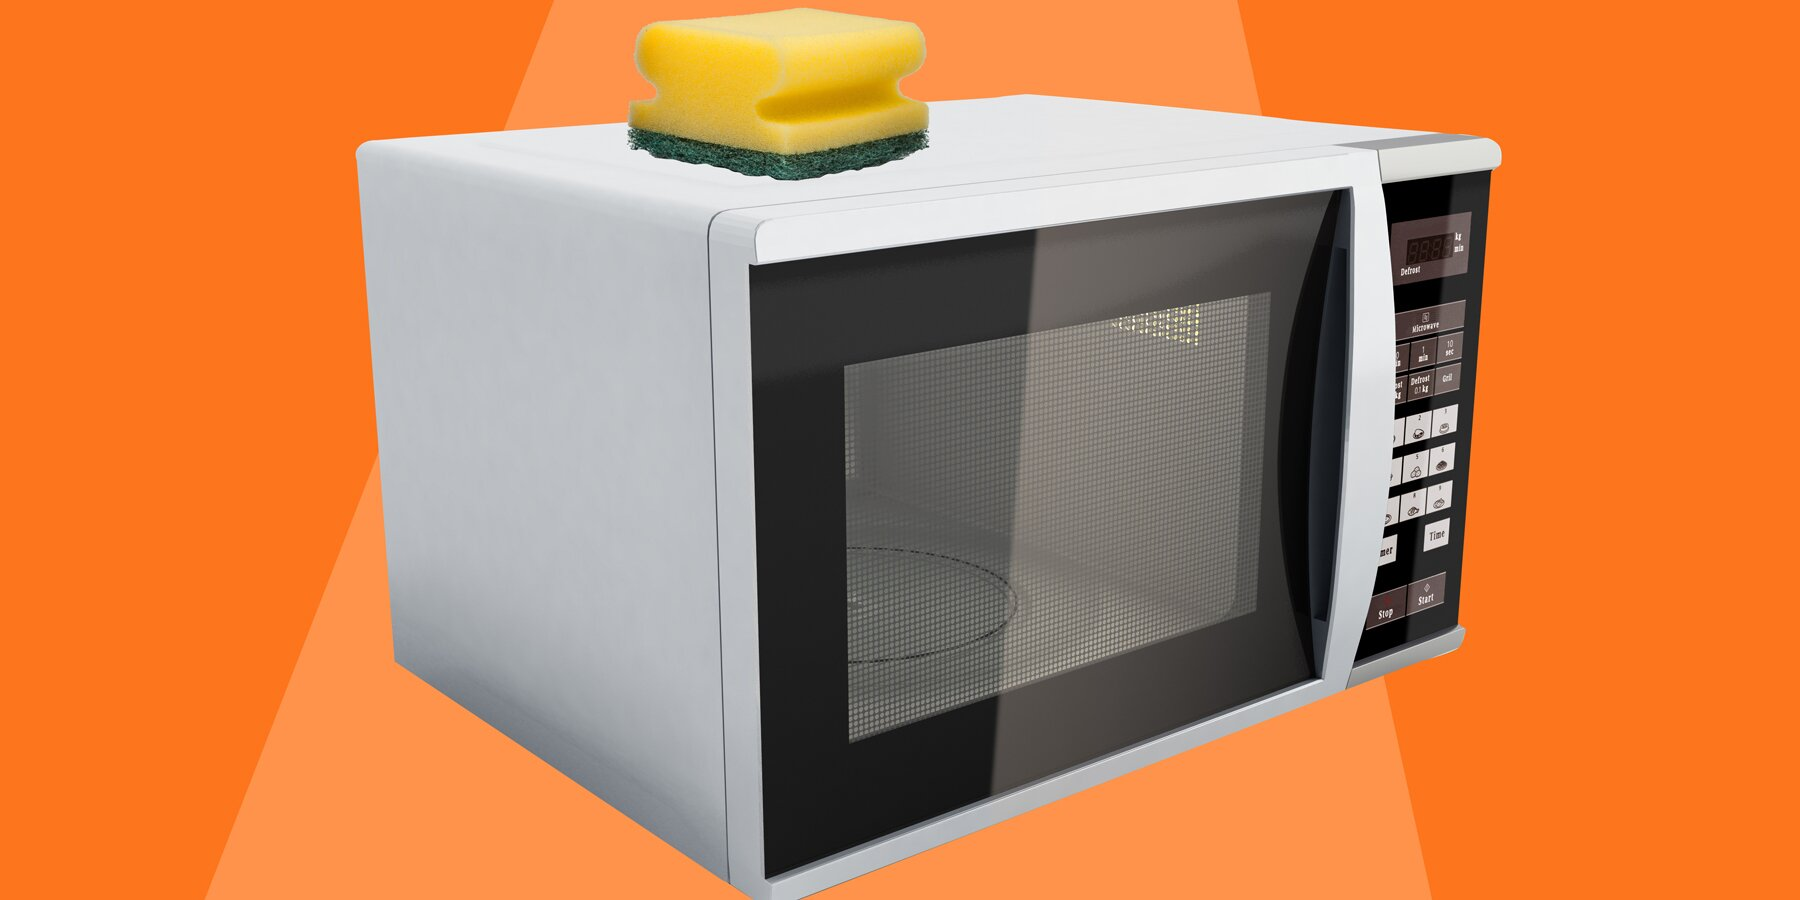 Microwave Cleaning Hacks And Tricks To